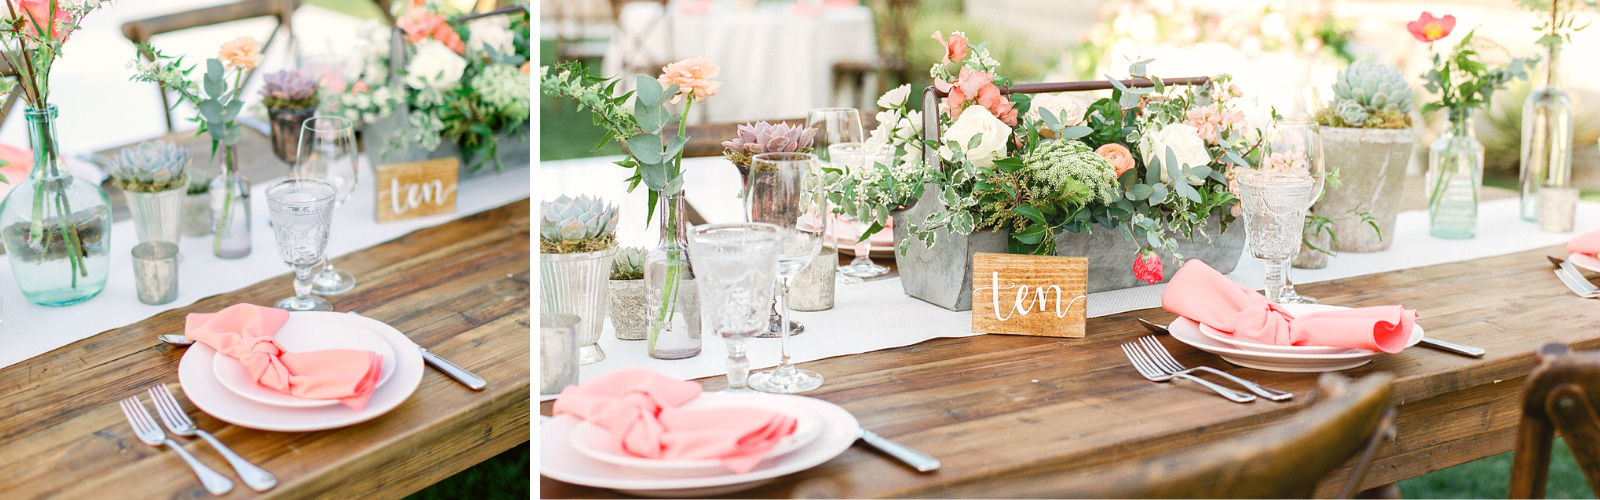 Baker Party Rentals Party Wedding And Tent Rentals In